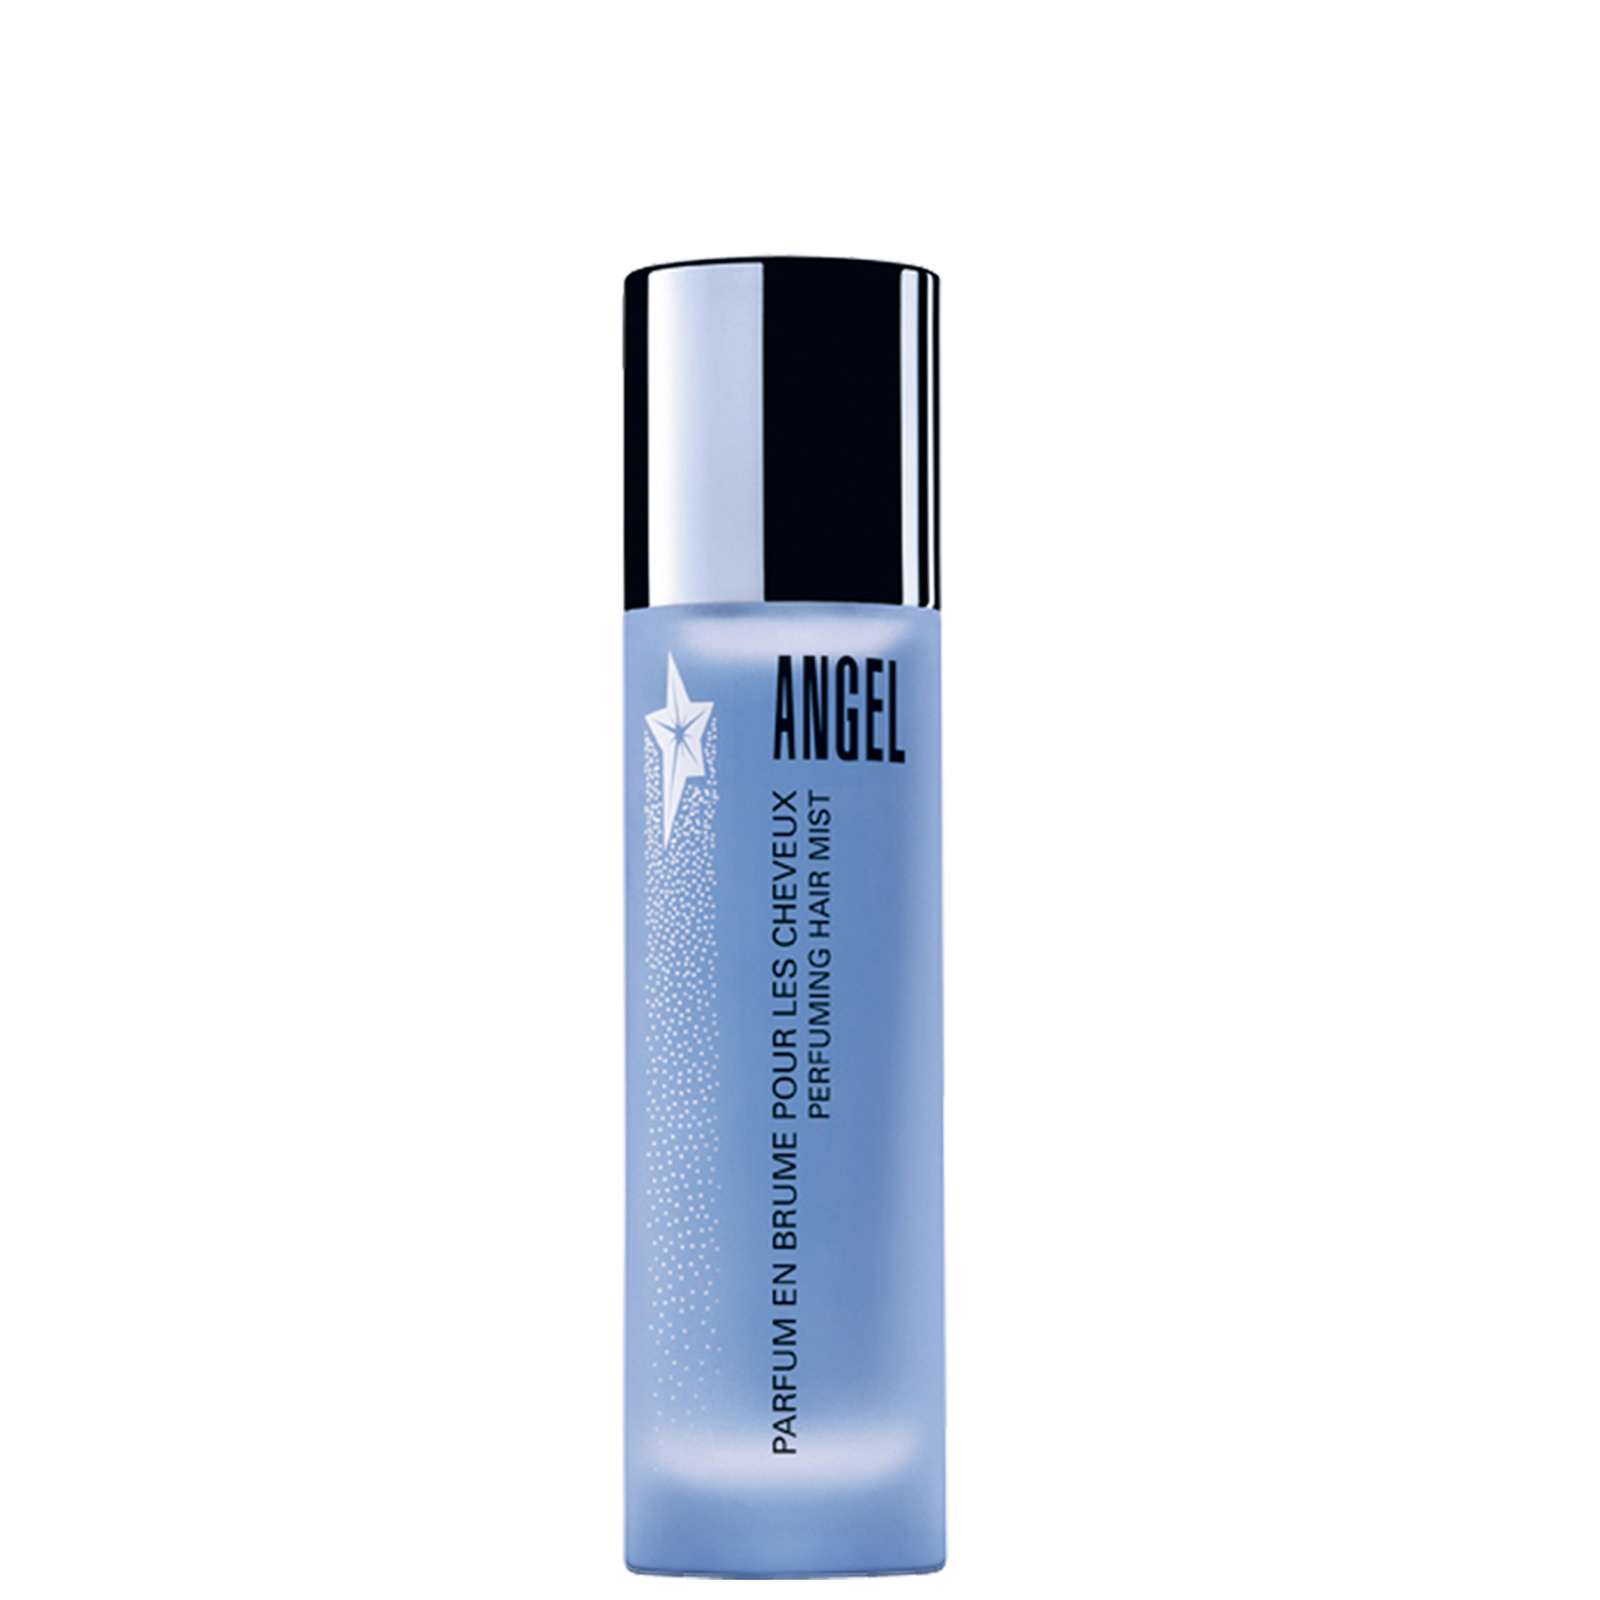 MUGLER Angel Perfuming Hair Mist Spray 30ml